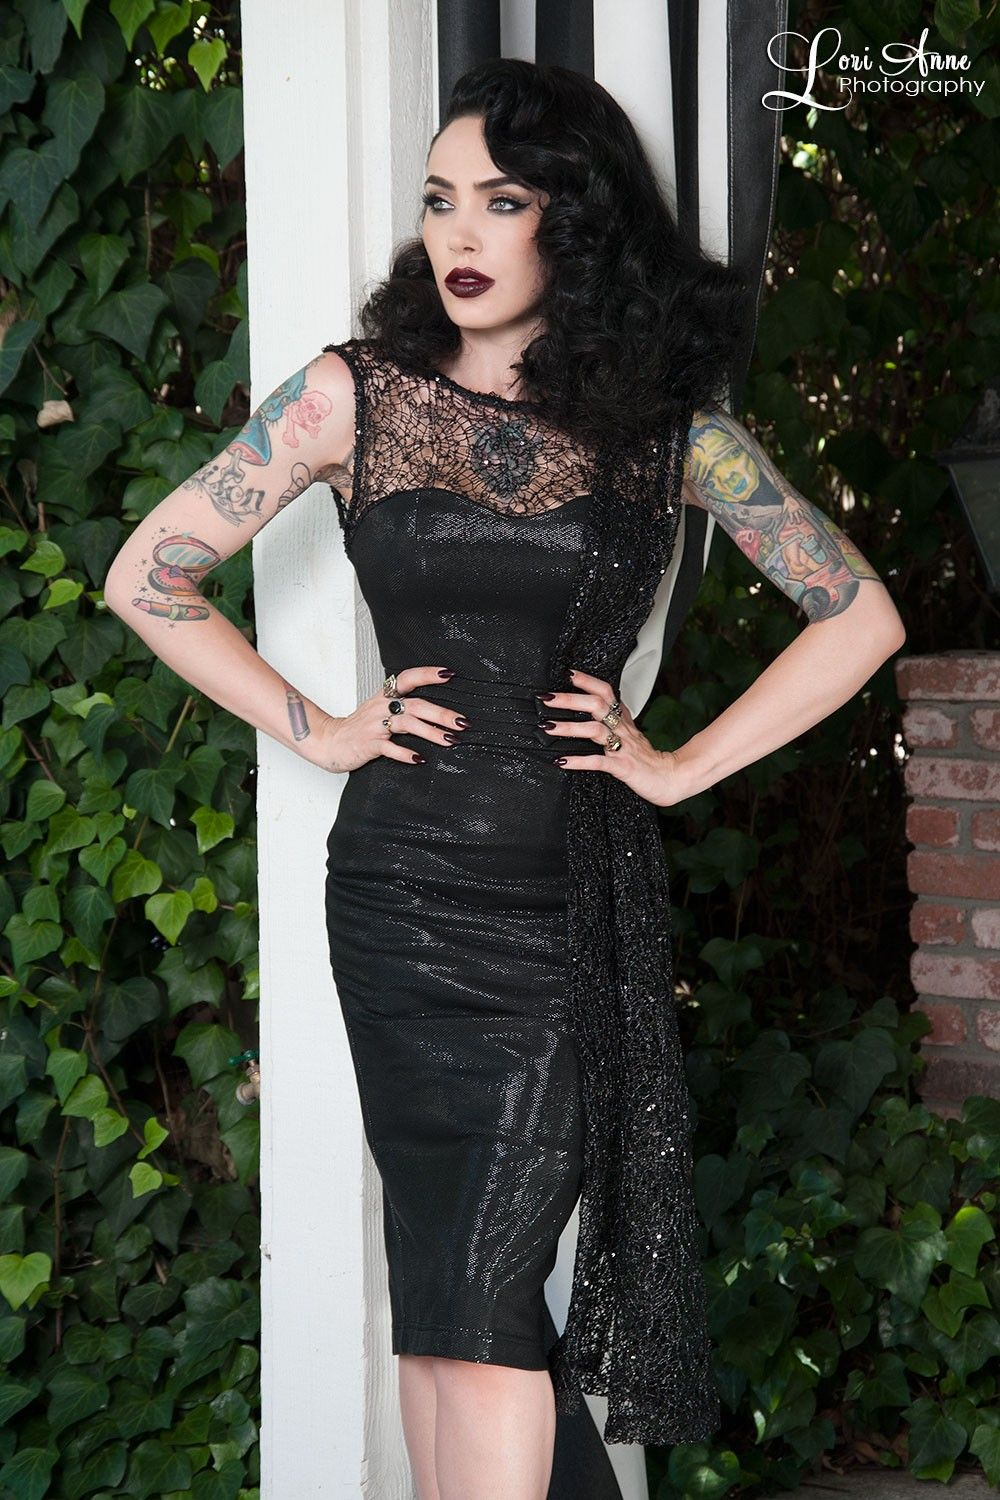 Black Widow Cocktail Dress in Black   Pinup Girl Clothing   Pinup ...